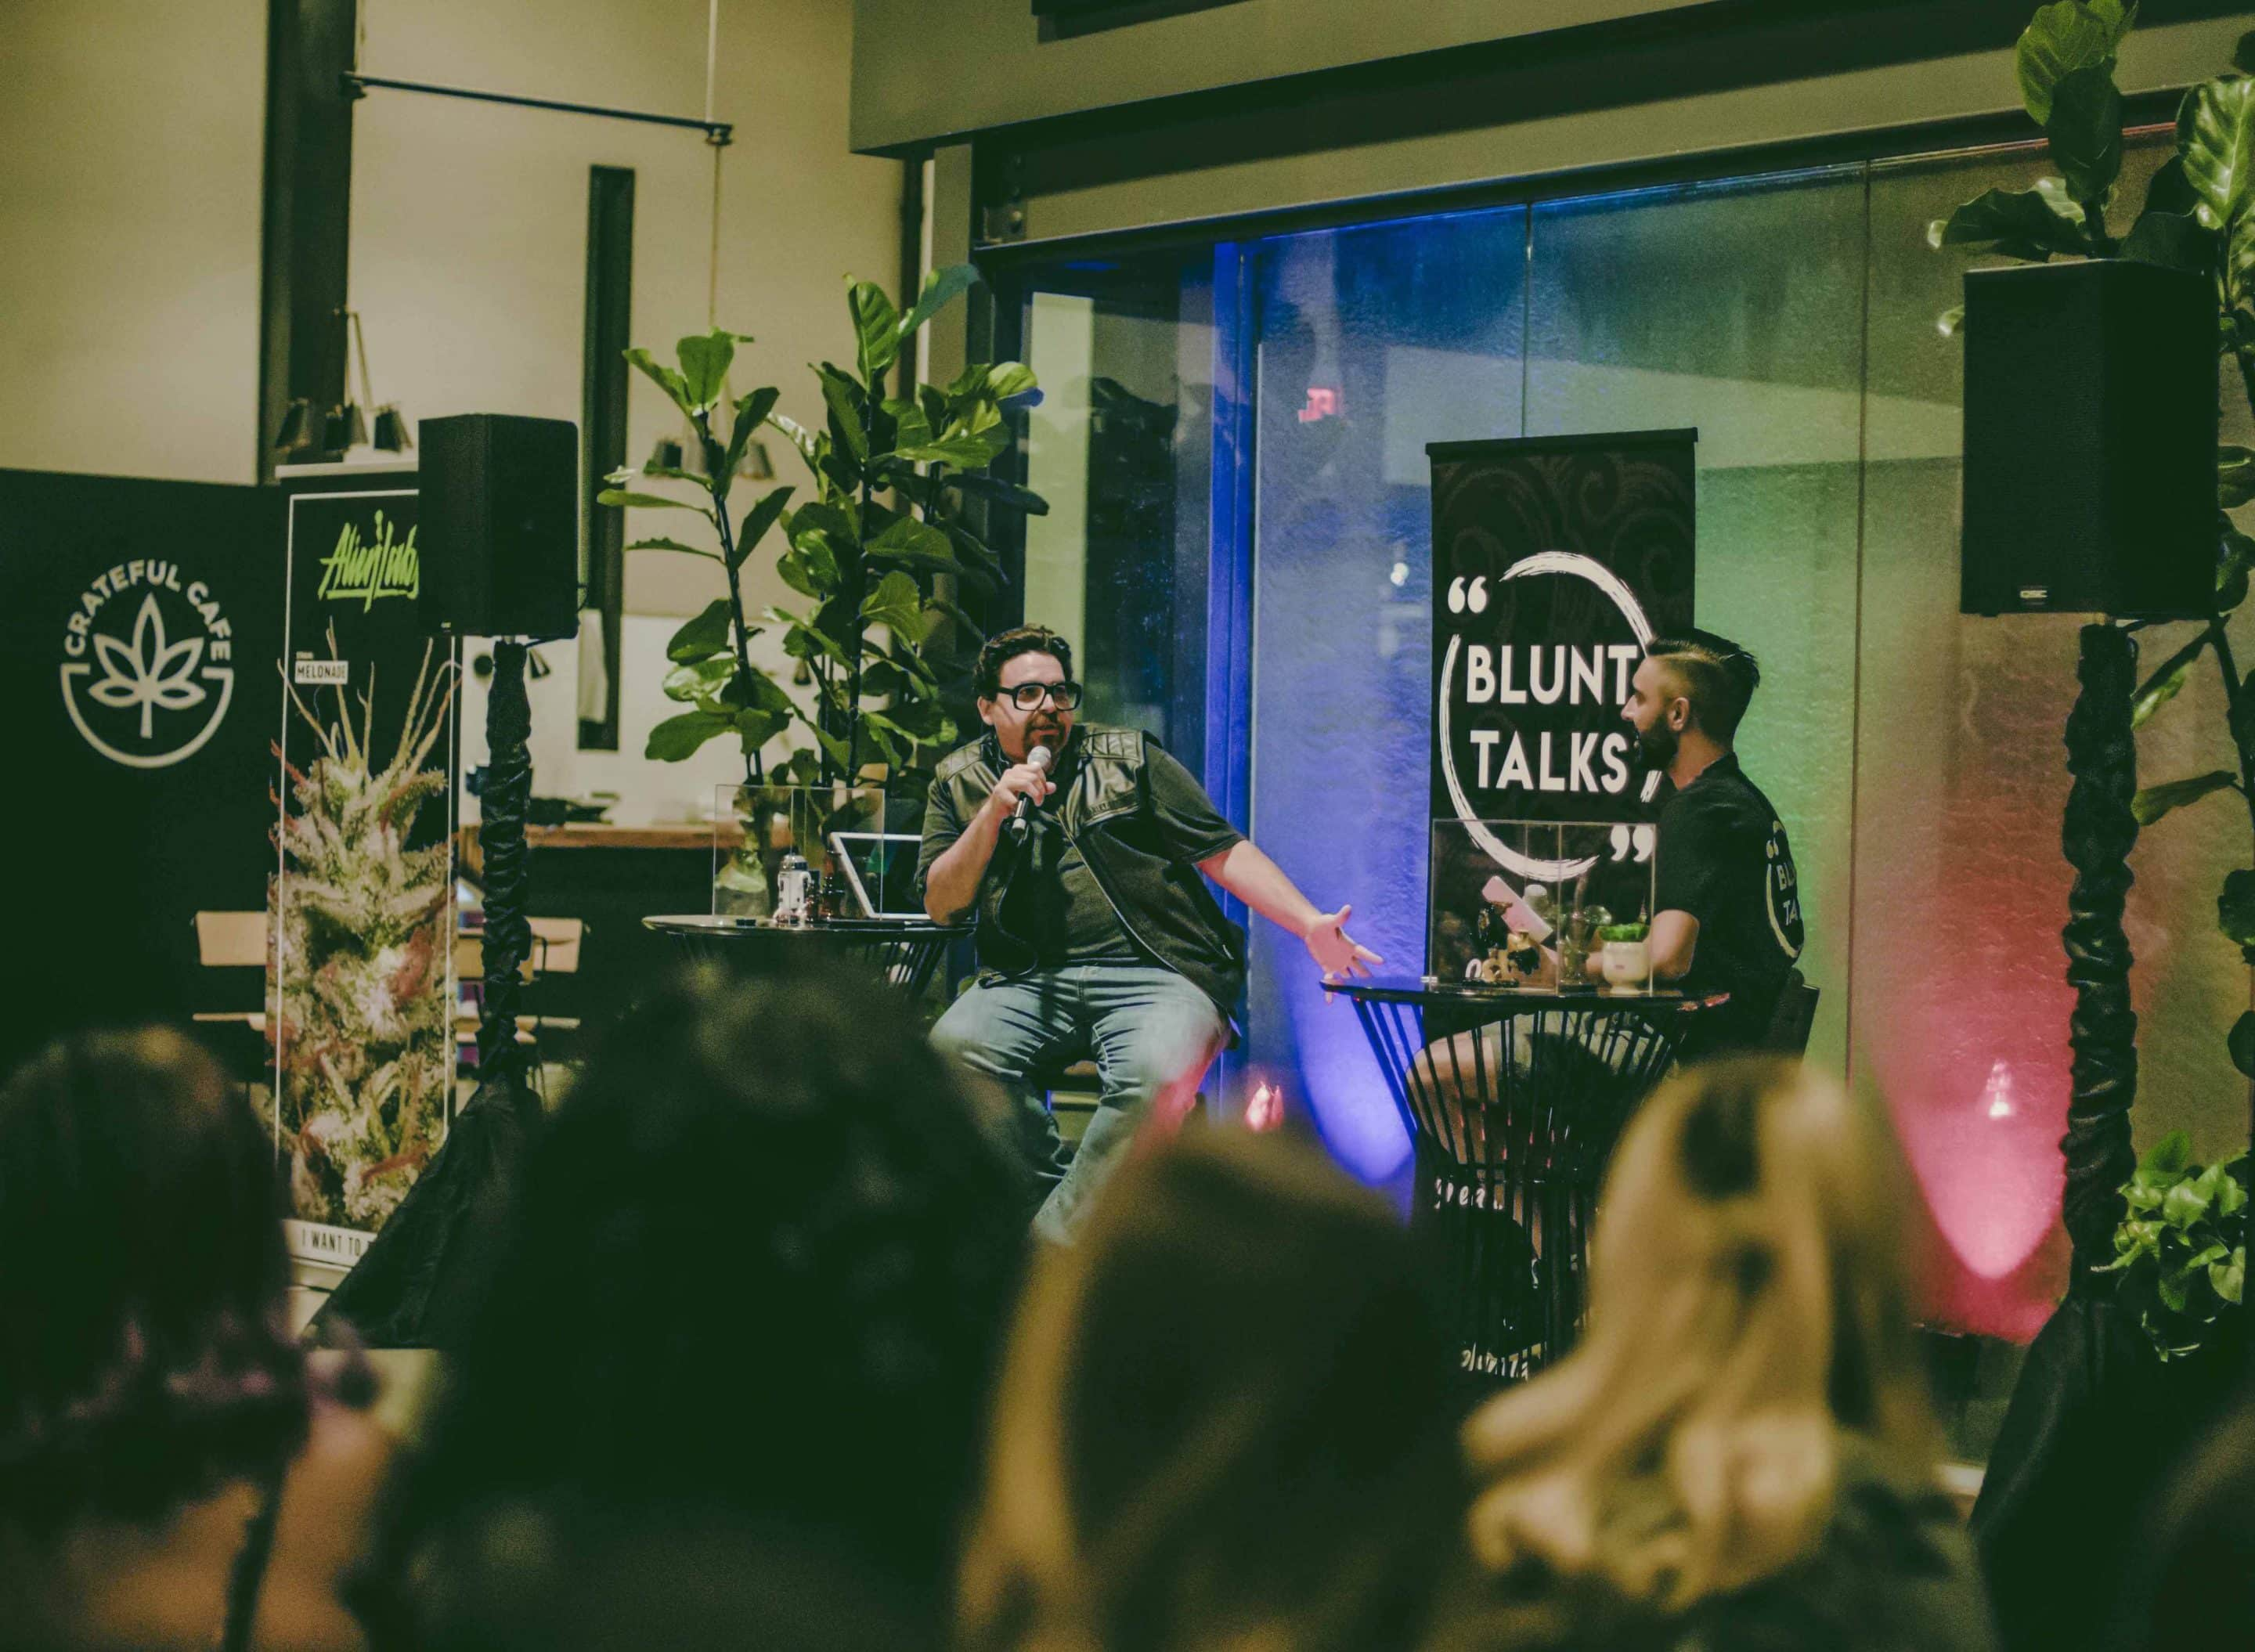 """Former Chief Cannabis Evangelist at Eaze and the Cannabis Producer for VICELAND's Bong Appétit, Jason Pinsky had a """"fireside chat"""" with co-host Sam Zartoshty. They talked about how to stay true to your brand during this time. """"Right now, as cannabis turns into a commoditized industry, brand building is really key,"""" he said."""